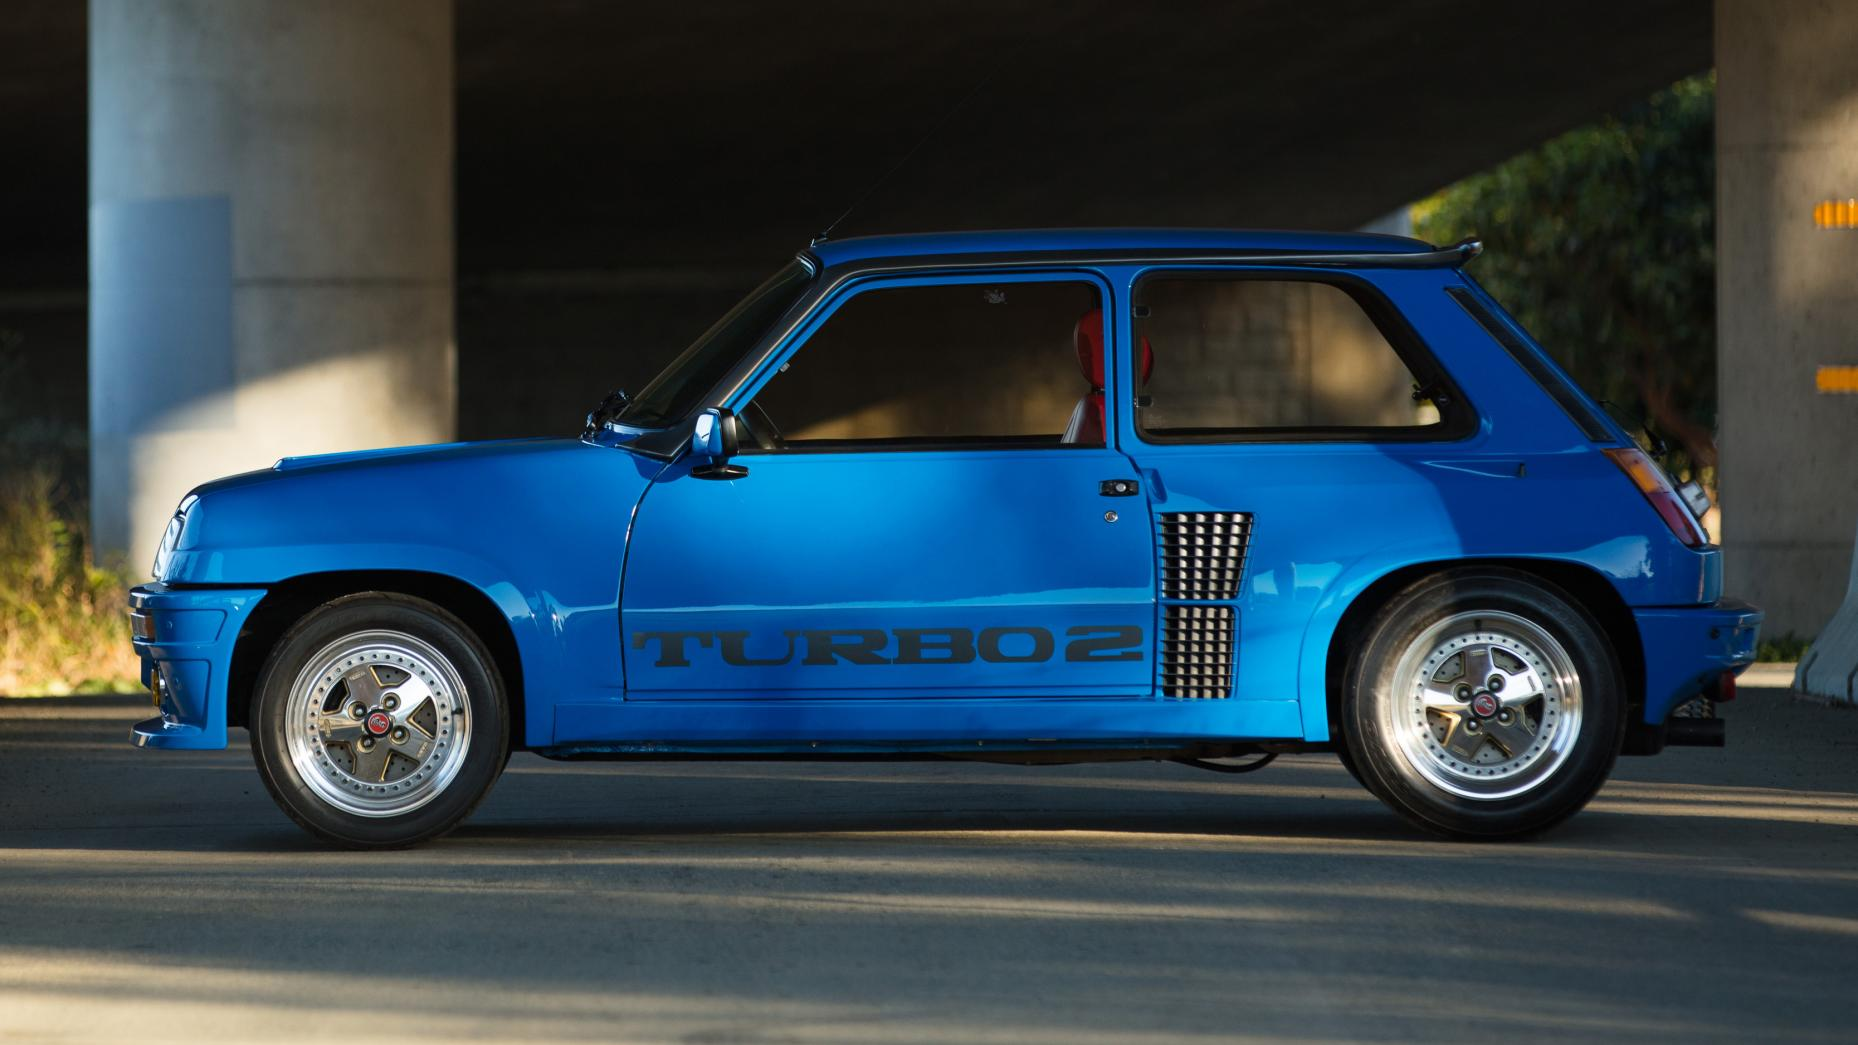 Renault 5 Turbo II 1983